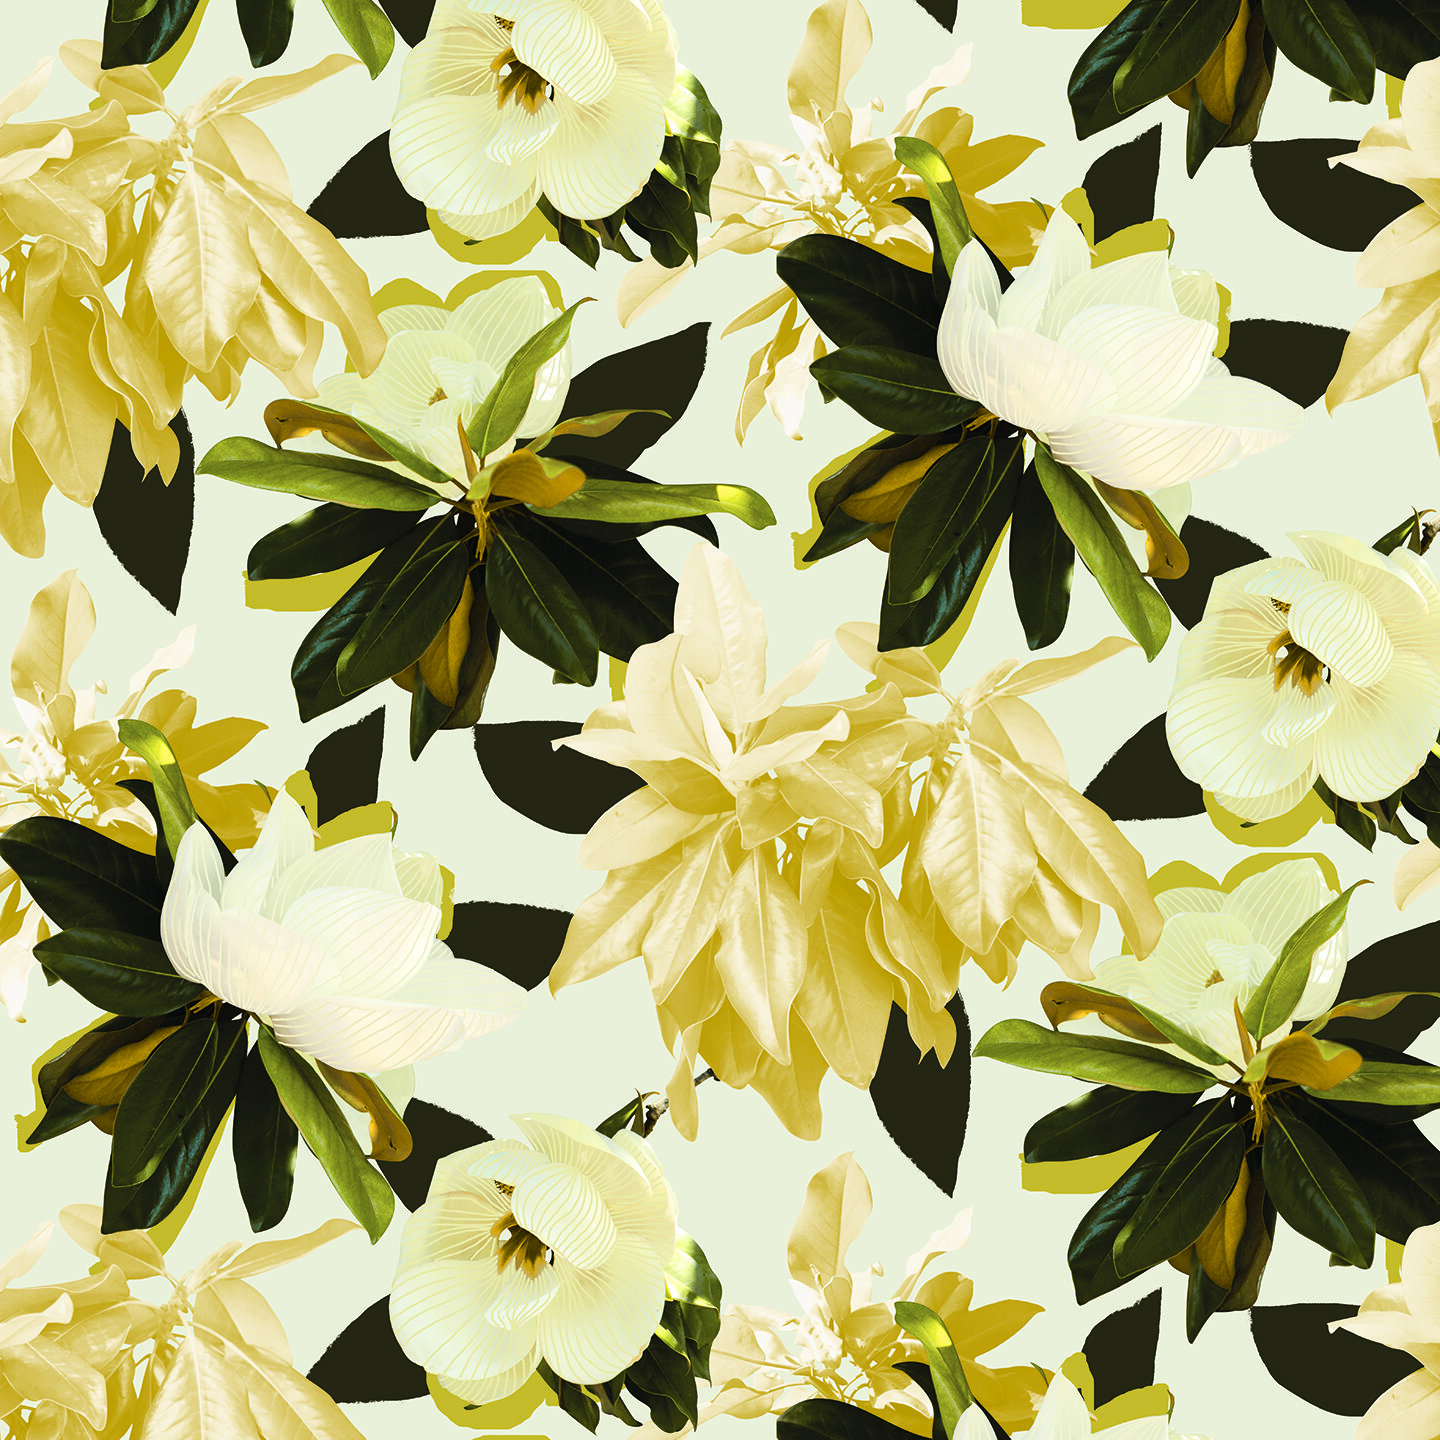 Magnolia Removable Fabric Wallpaper Peel And Stick Samantha